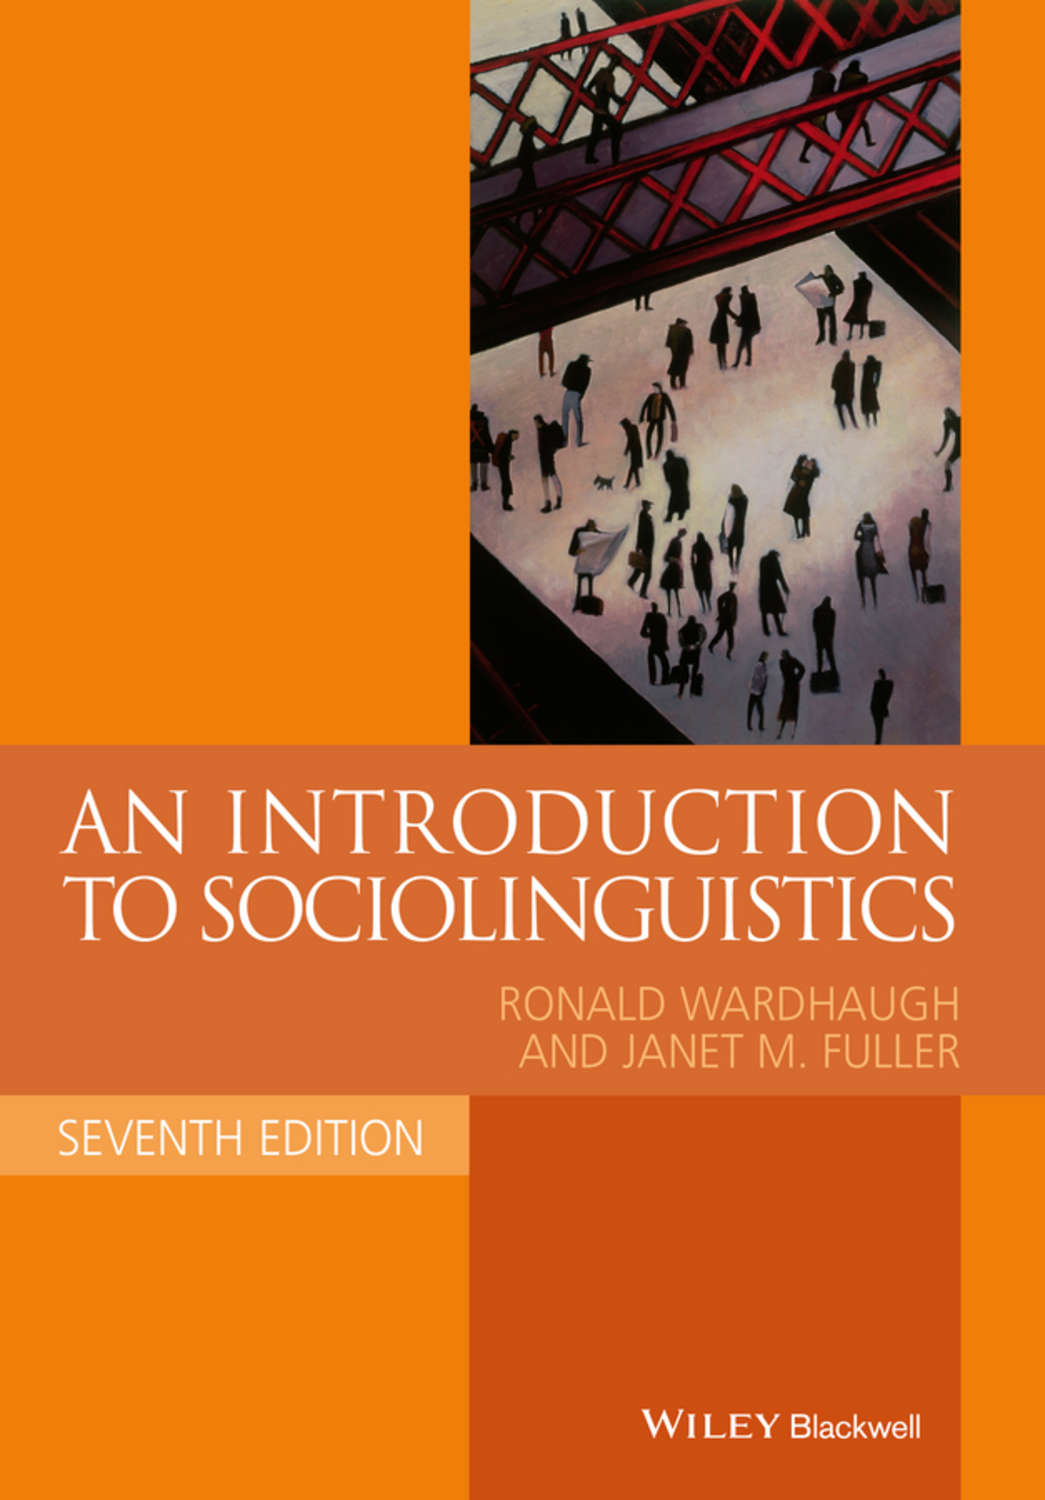 analysis of an introduction to sociolinguistics Depending on the scope of the analysis, sociolinguistics may try to analyze specific differences of a group of speakers in a speech community at a micro level.